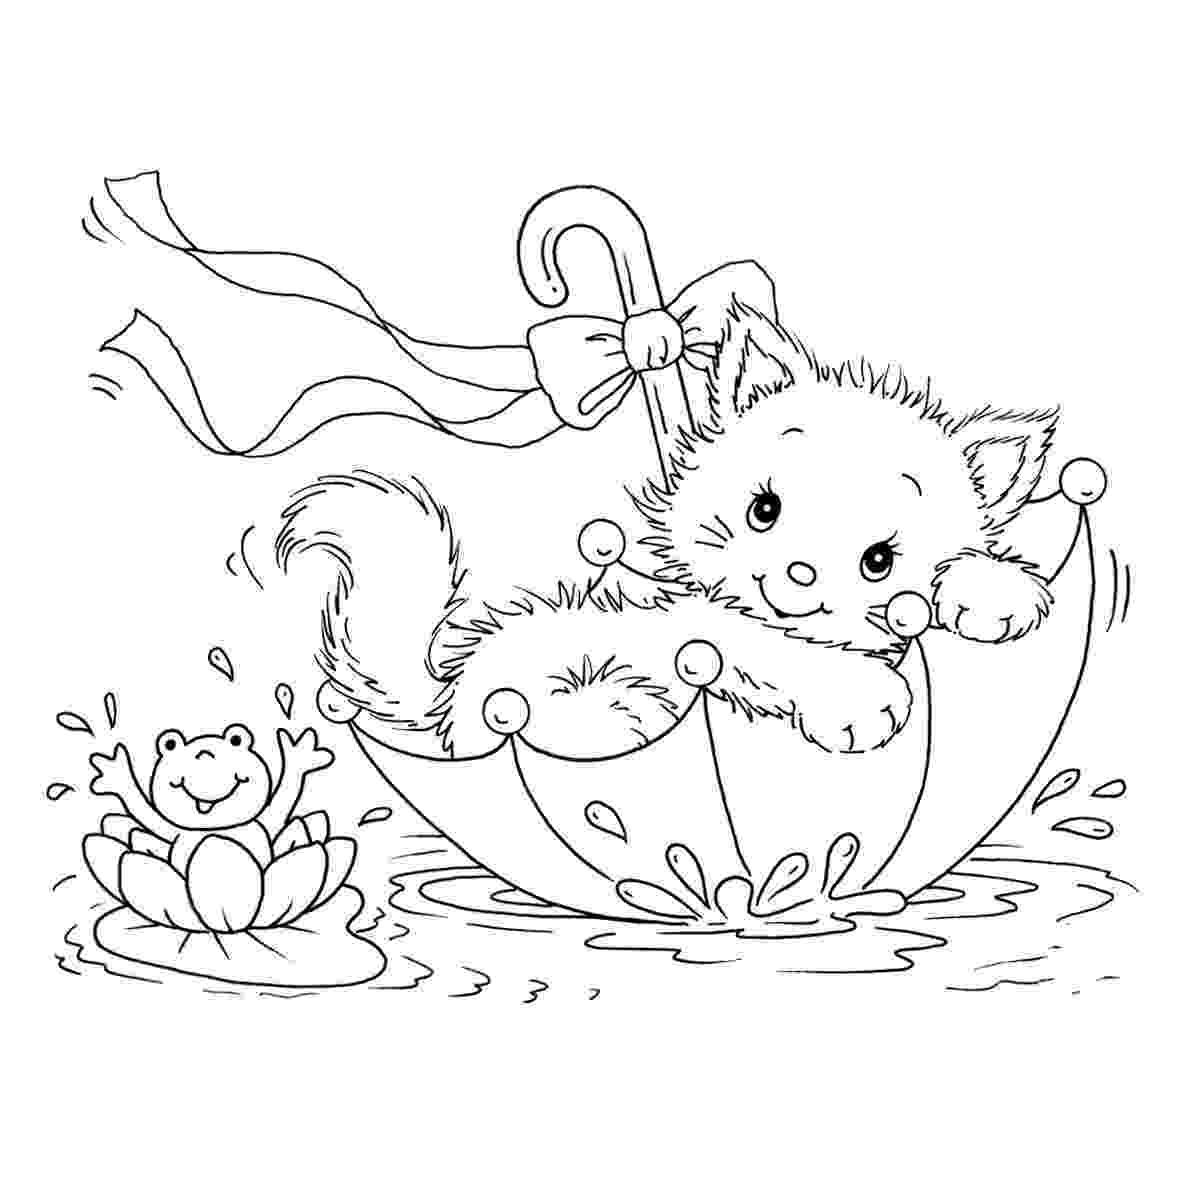 free printable cat pictures to color coloring pages cats and kittens coloring pages free and printable cat pictures color free to